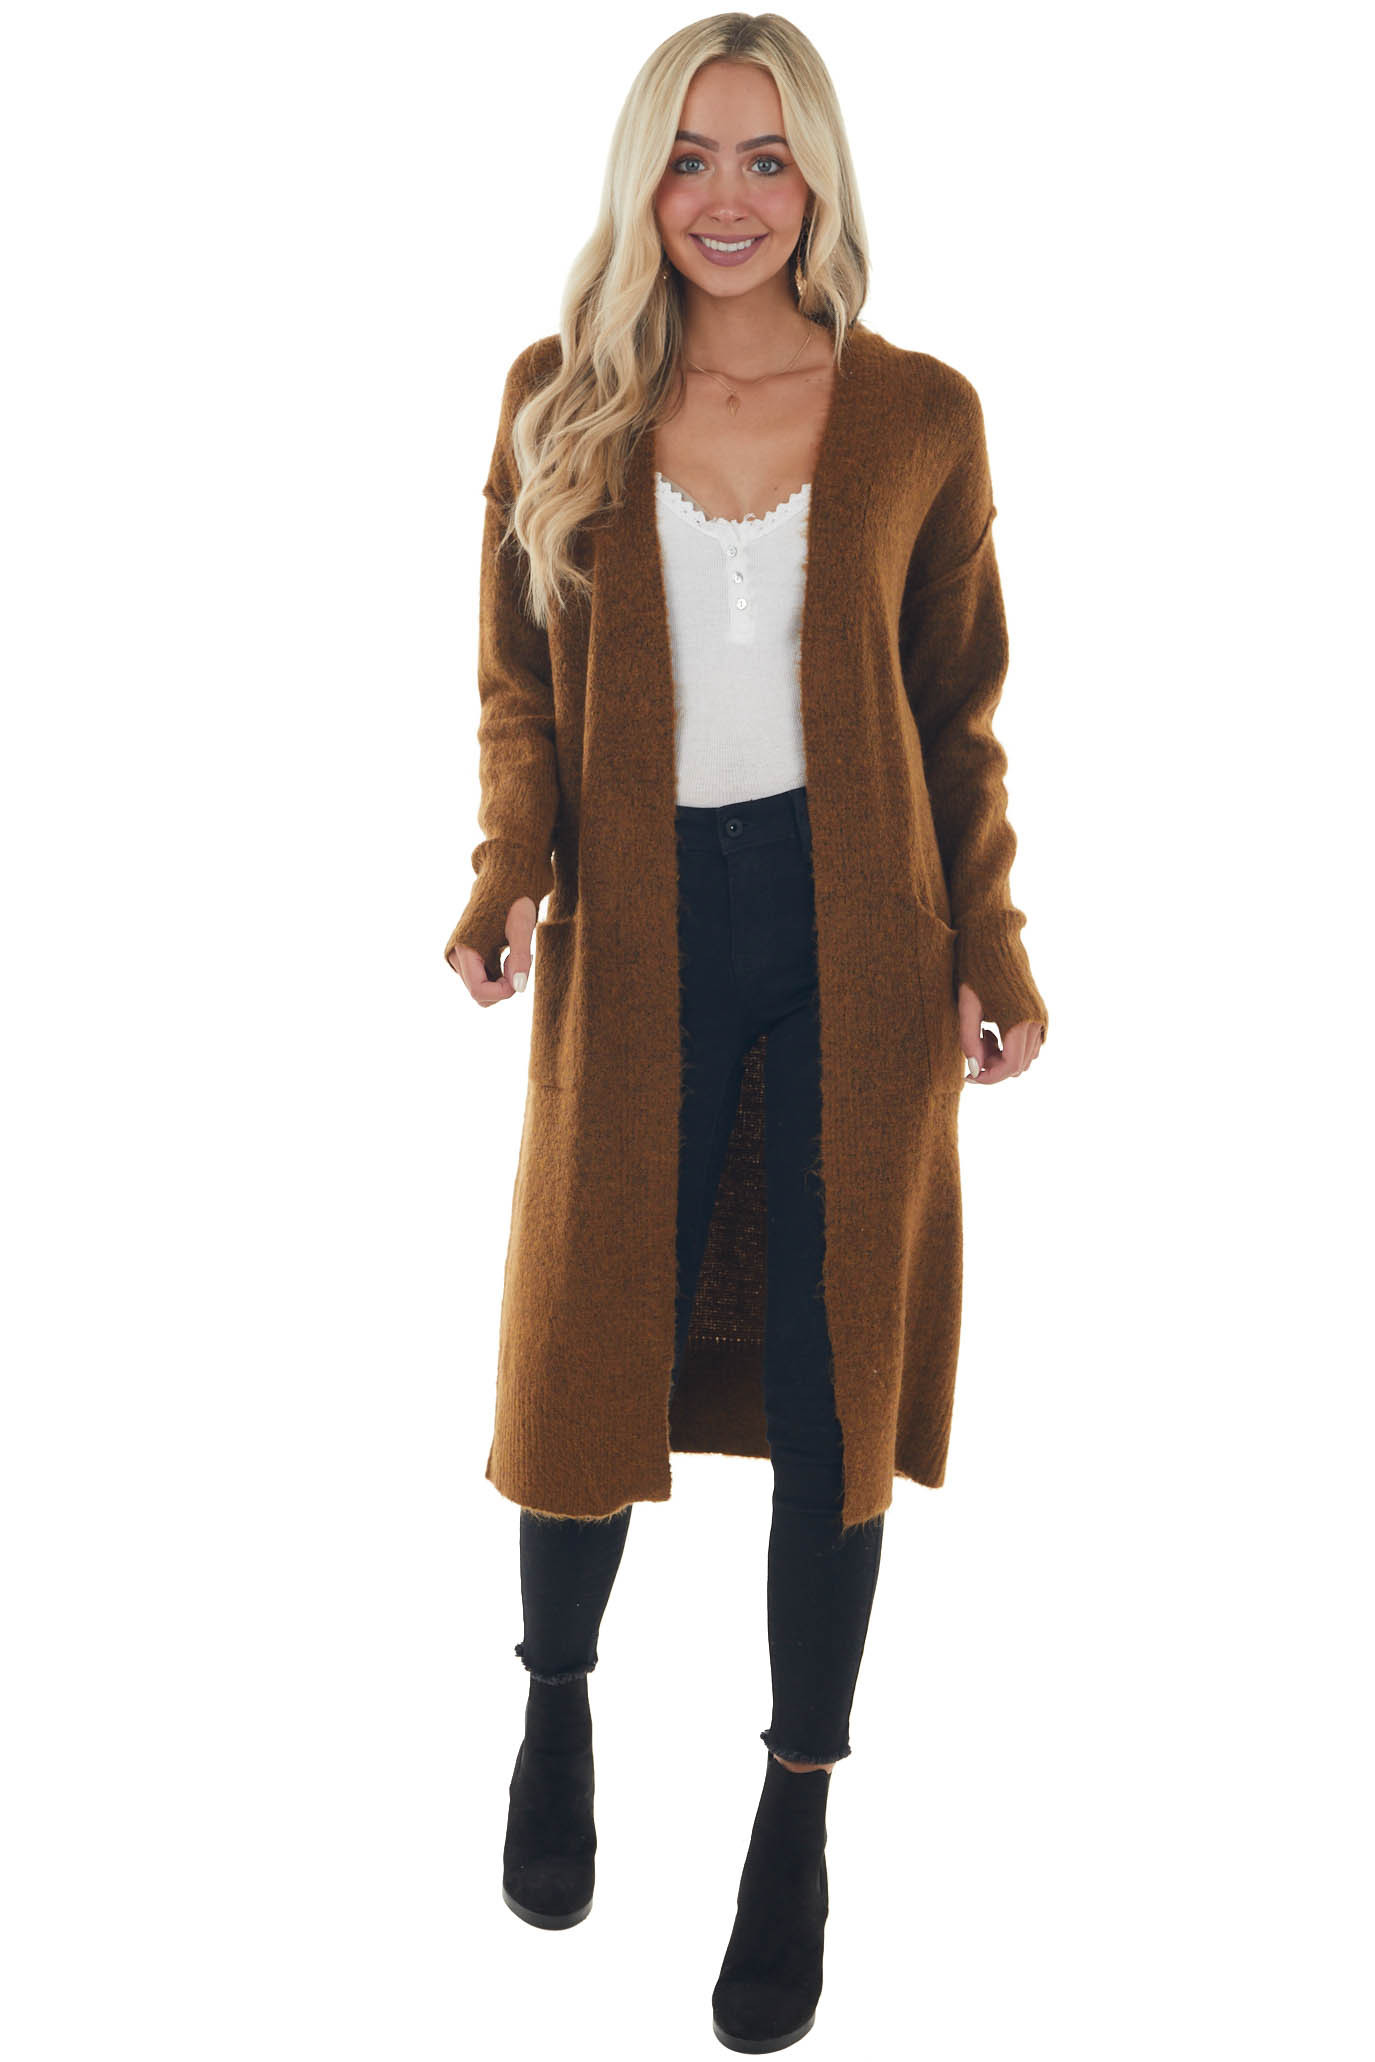 Sepia Duster Length Knit Cardigan with Pockets